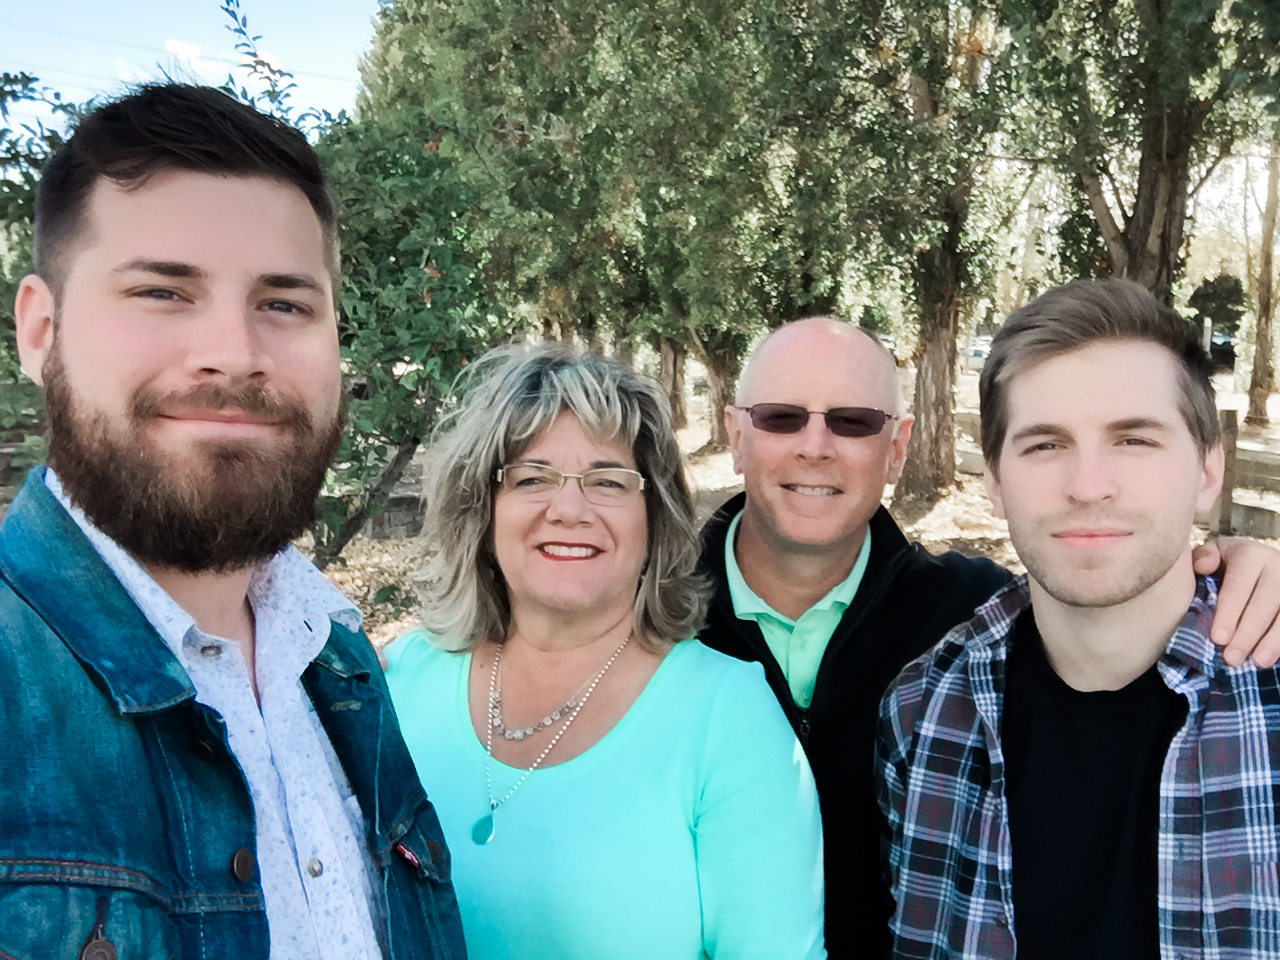 Our last family photo taken in Napa for my birthday.